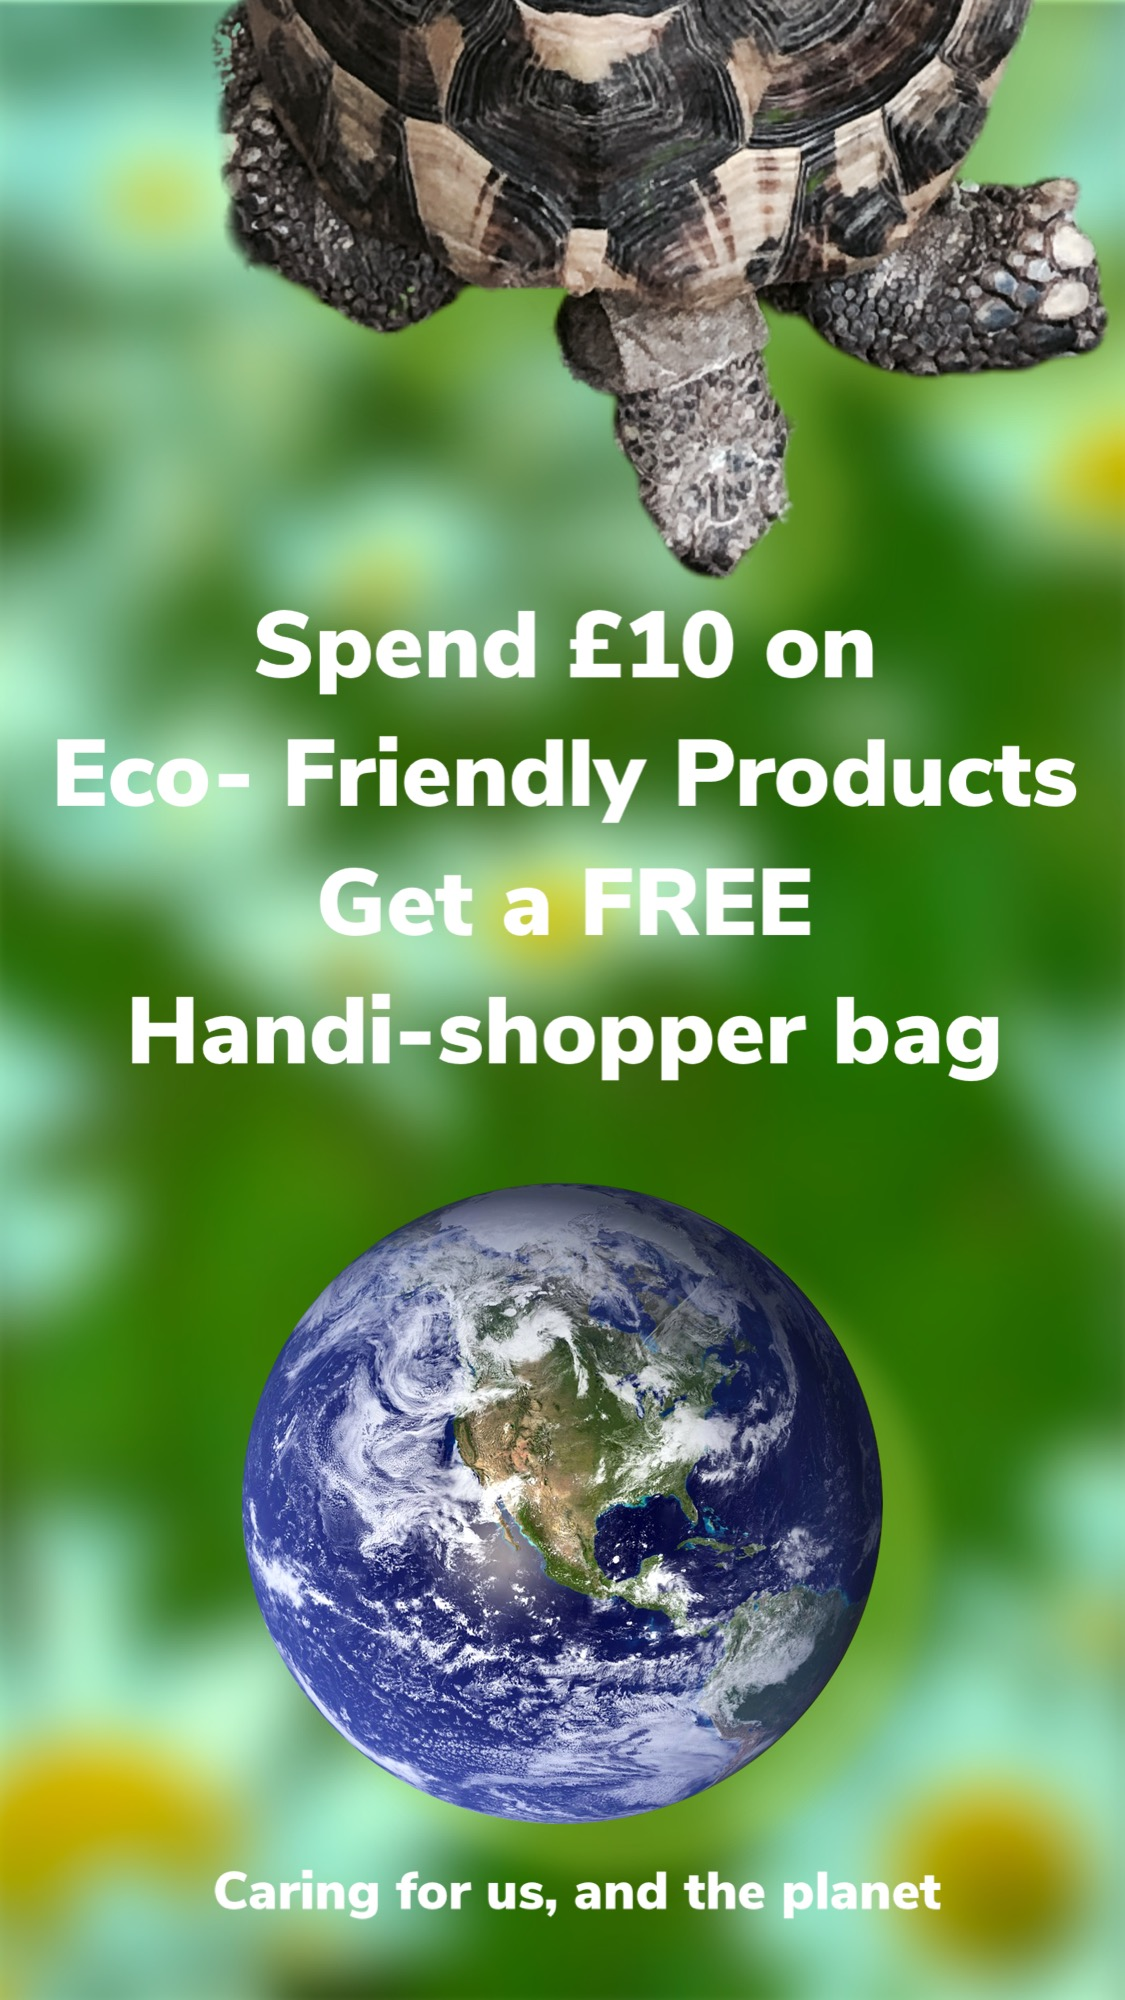 Spend £10 on Eco products and receive a free Hand-shopper bag